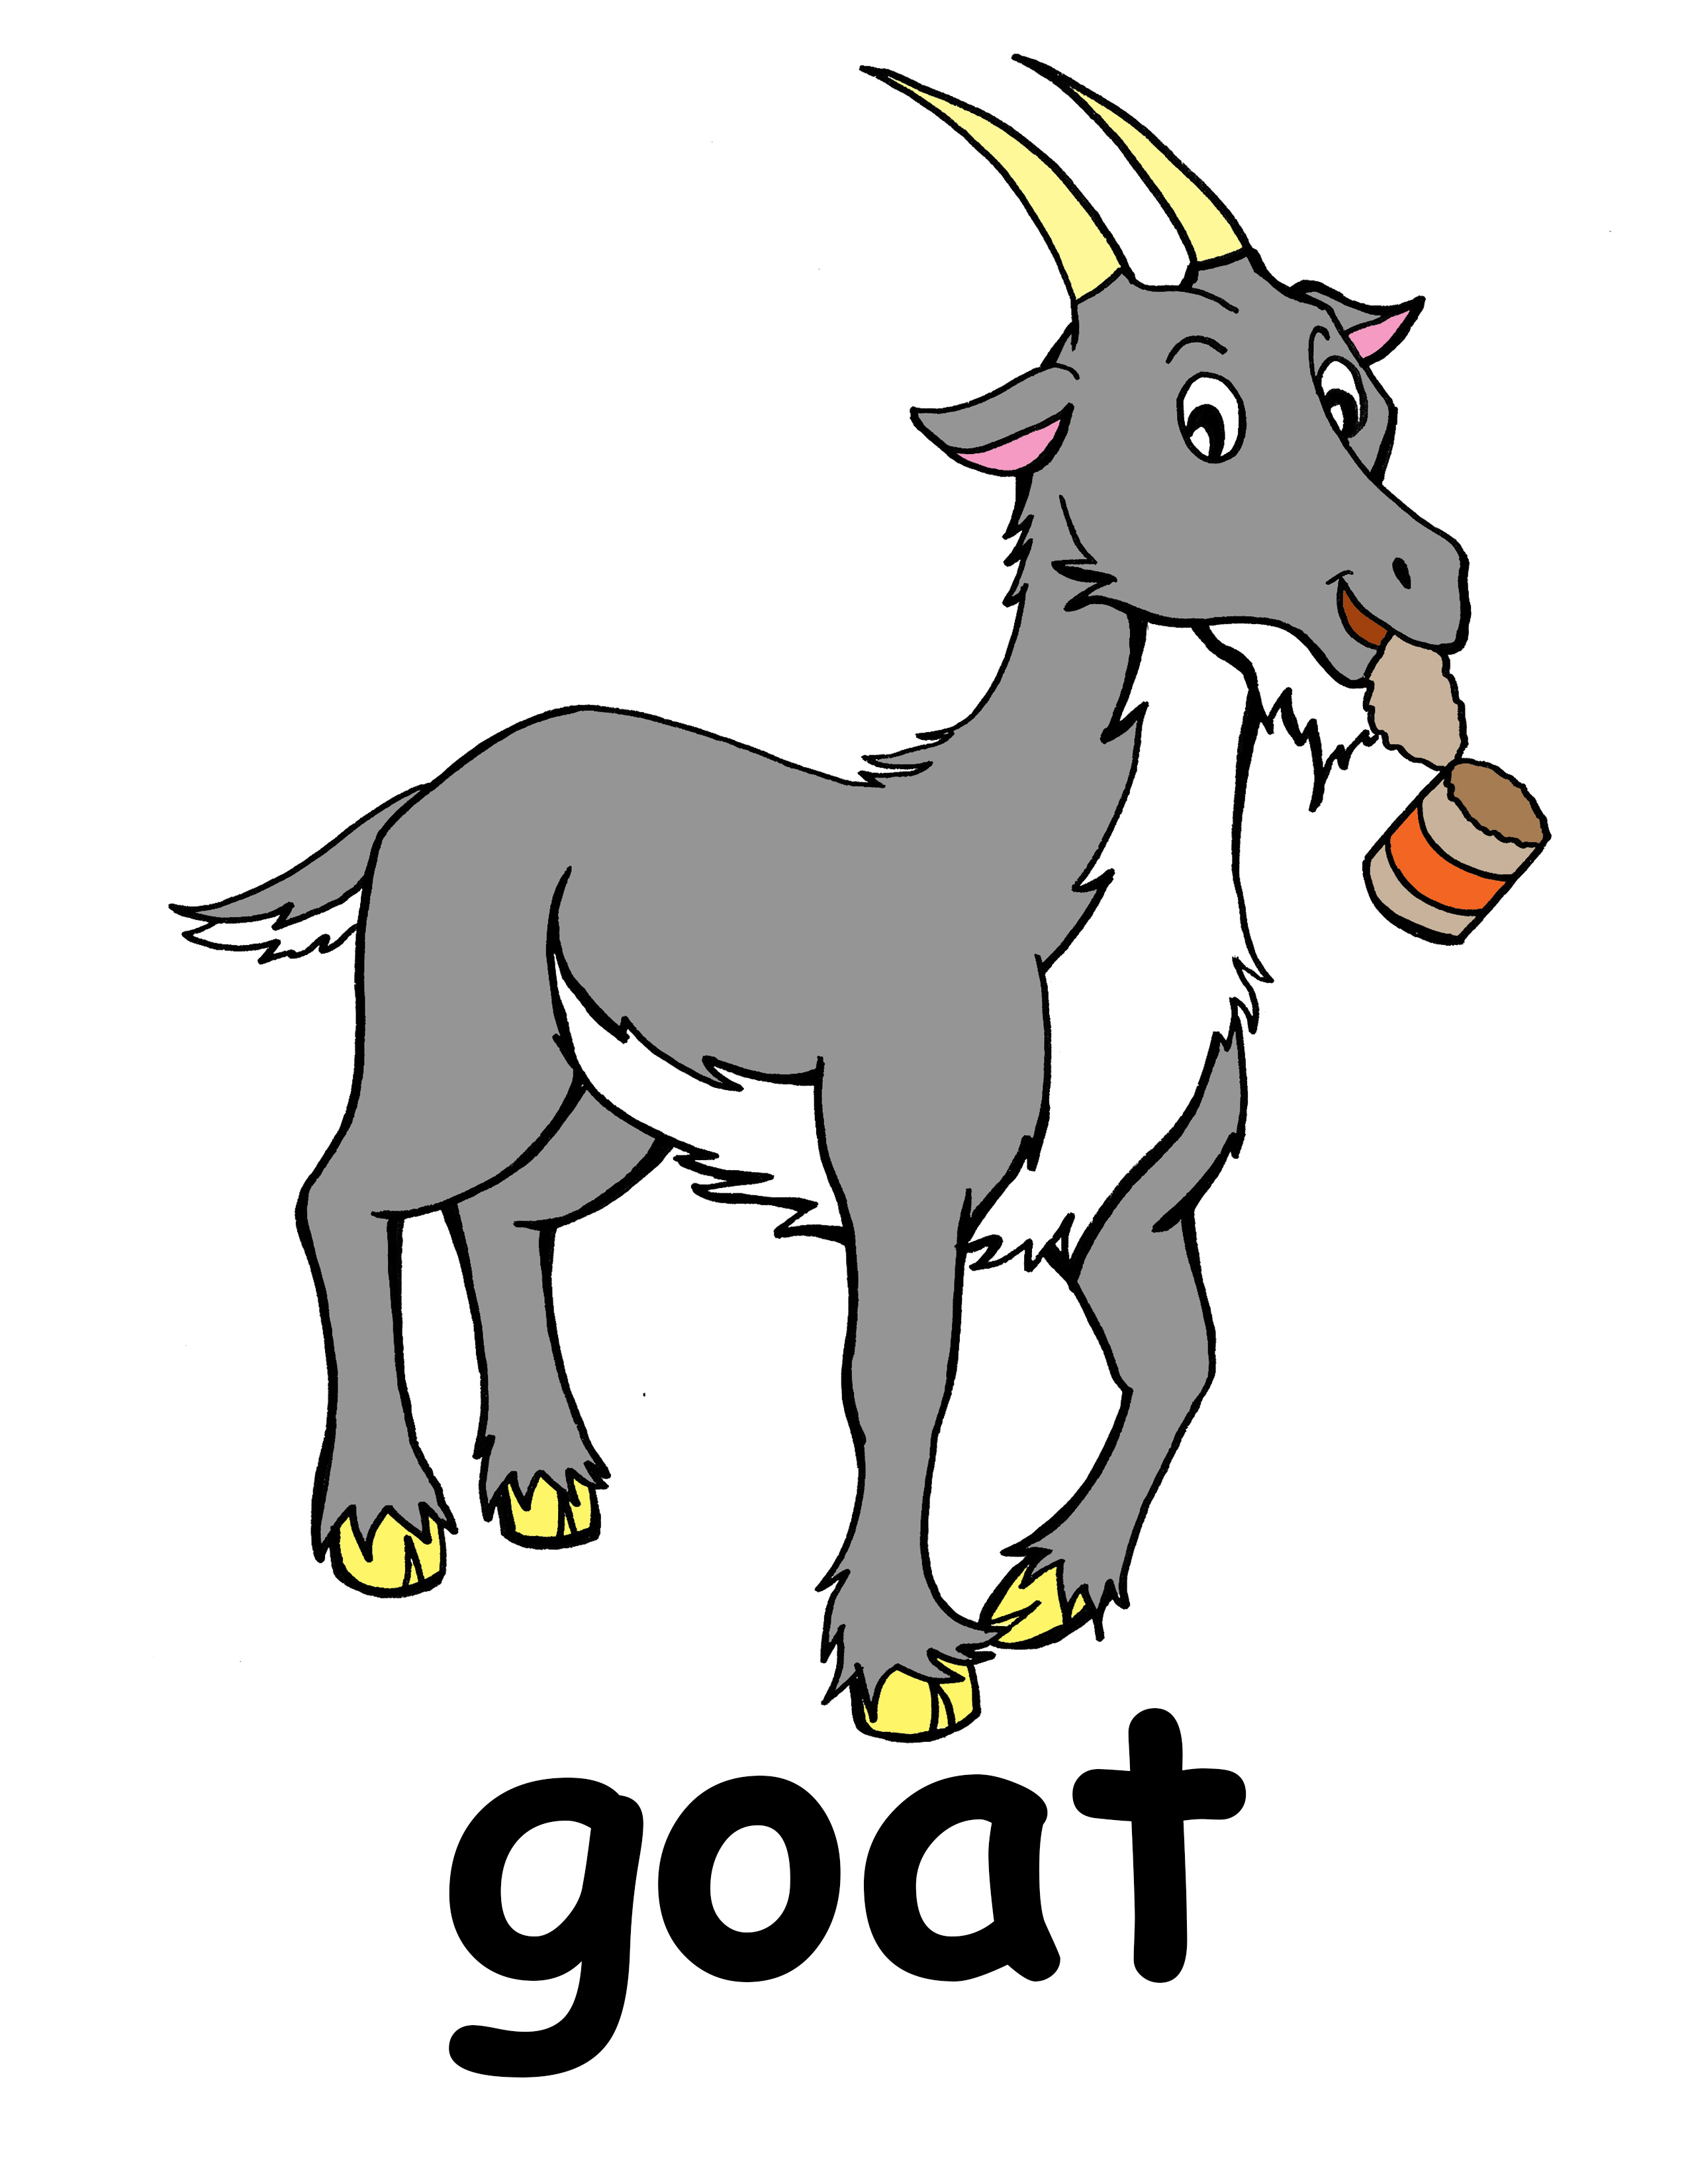 Goat clipart grey goat. Clip art baby kid